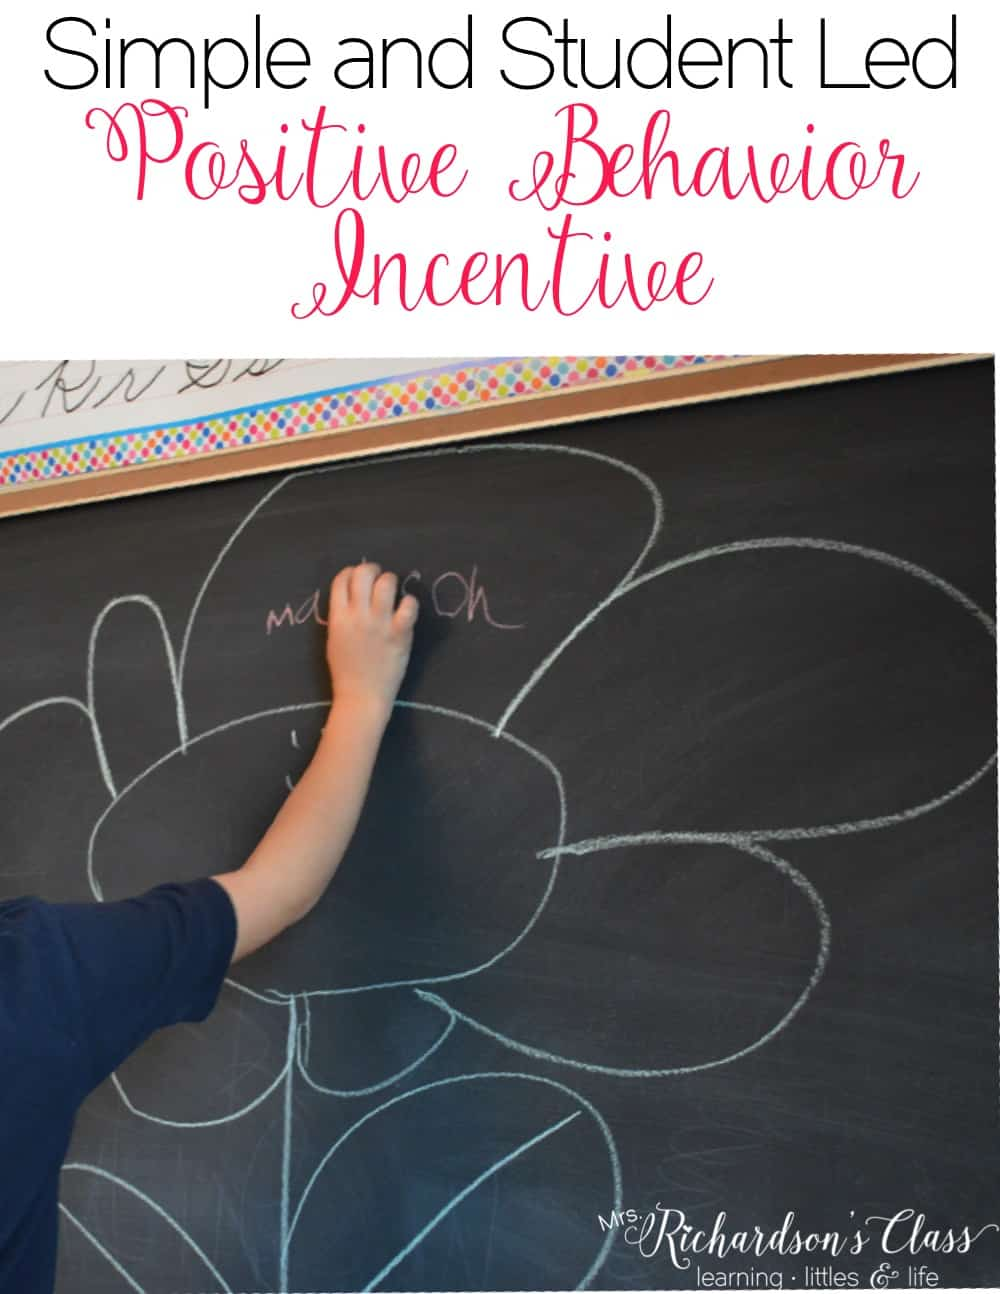 This positive behavior reinforcement costs you nothing is the perfect way to have students take ownership of their behavior. This simple classroom management tip doesn't even need a printable! #classroommanagement #behaviormanagement #positivereinforcement #free #classroomteacher